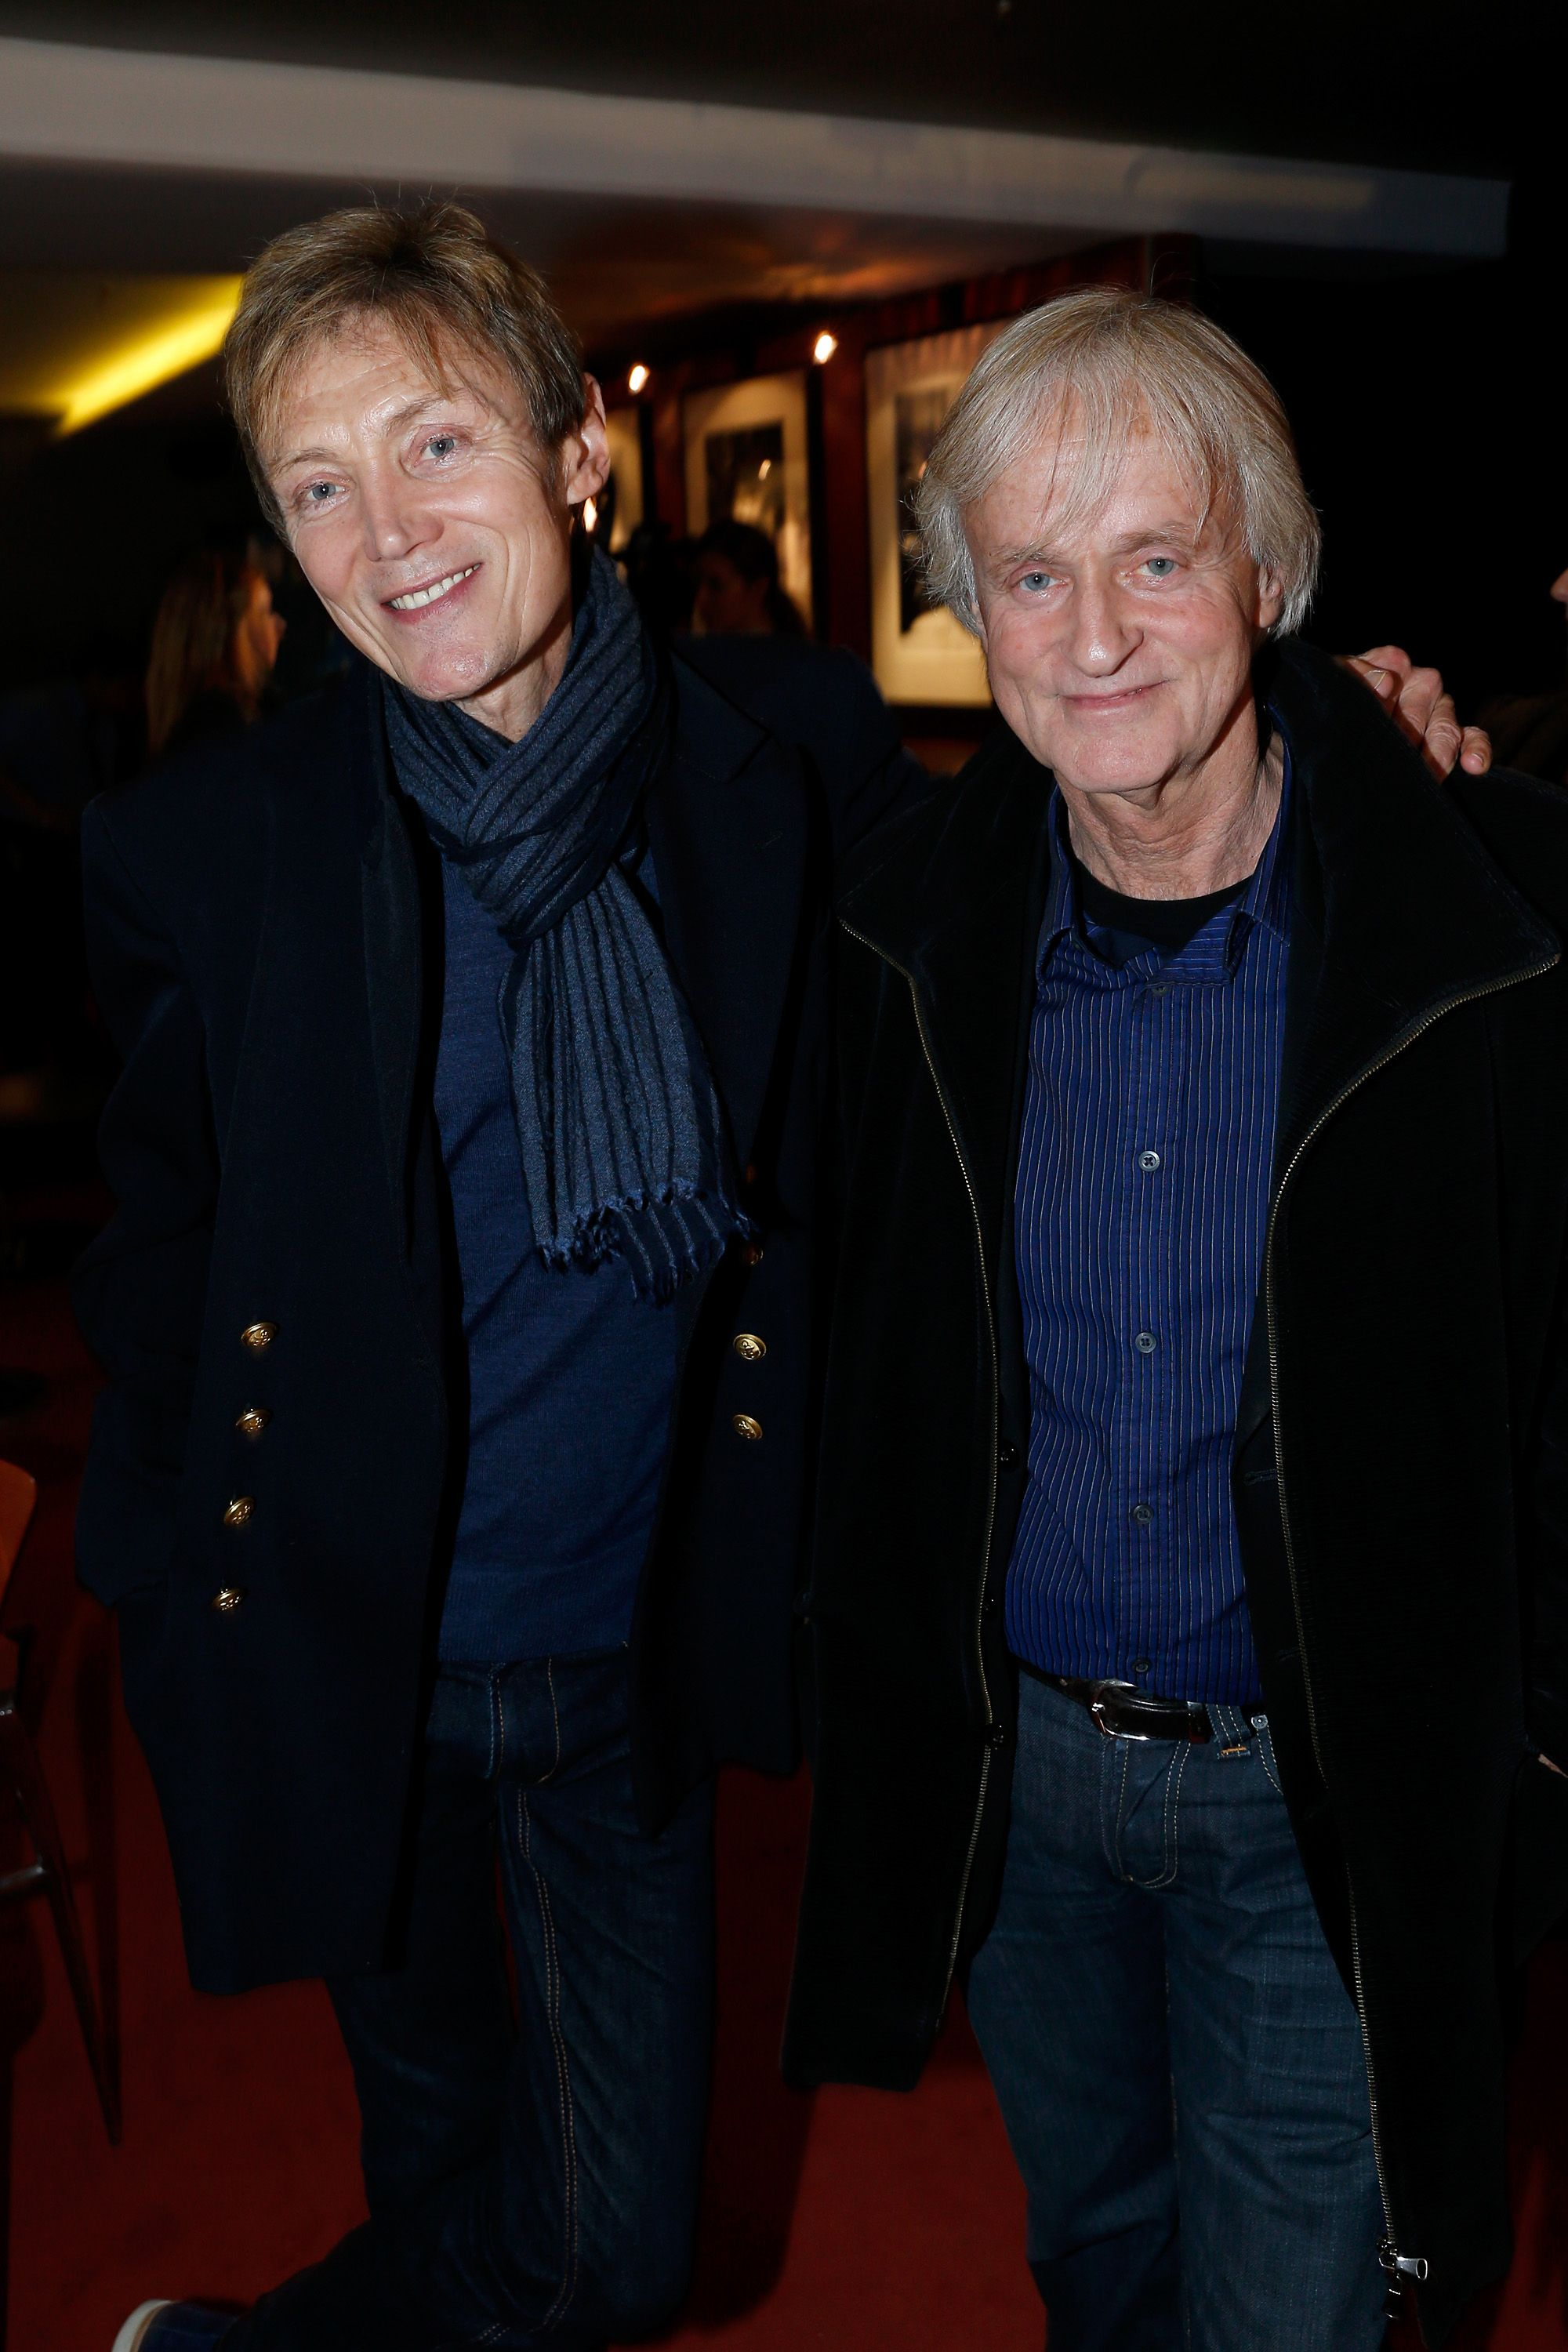 Le chanteur Dave et Patrick Loiseau à l'UGC Cine Cite des Halles le 25 mars 2013 à Paris, France. | Photo : Getty Images